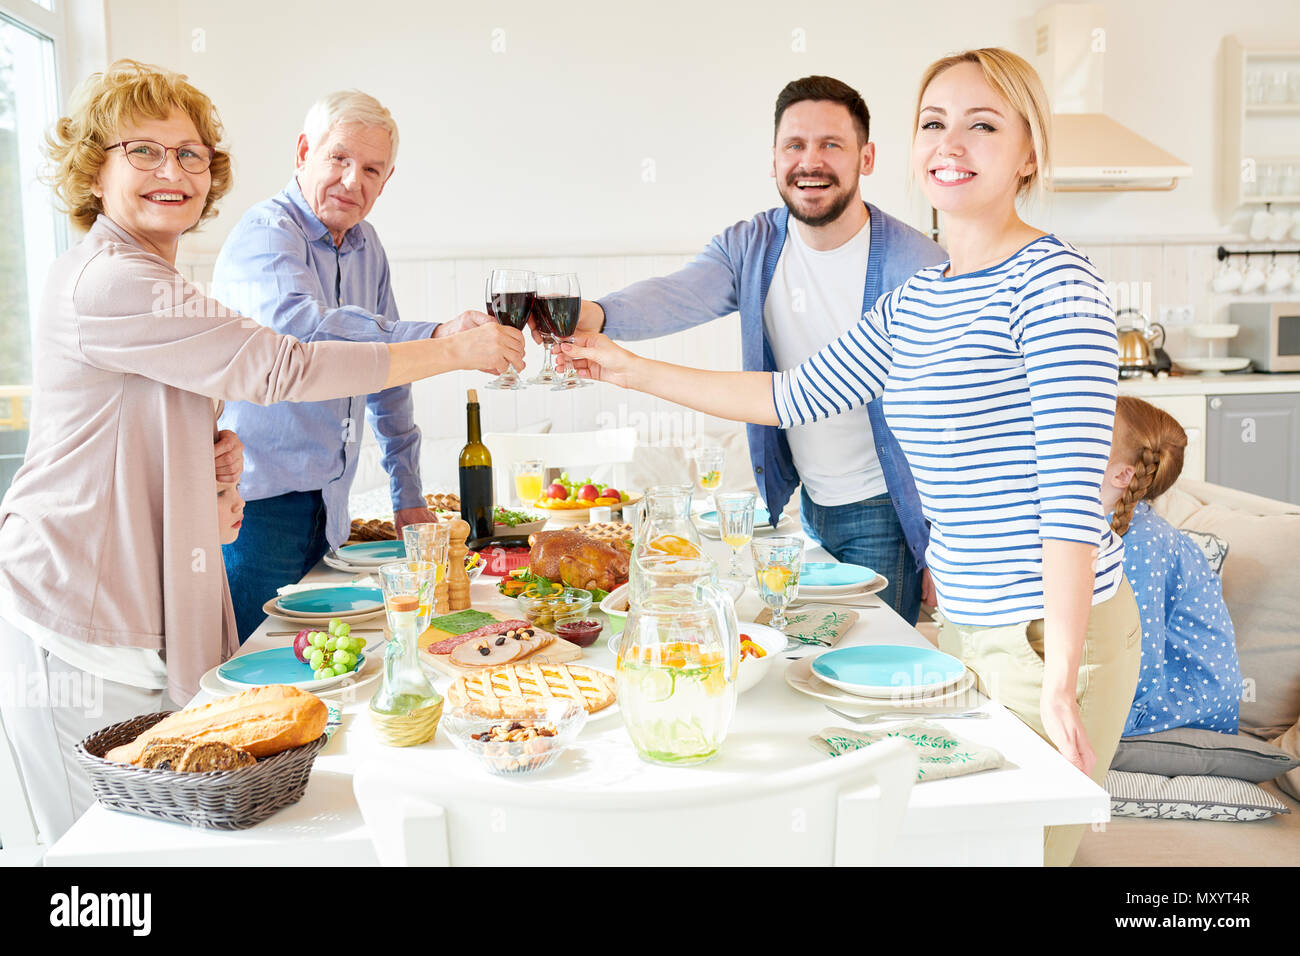 Portrait of happy two generation  family enjoying dinner together clinking glasses over festive table  with delicious dishes and smiling looking at ca - Stock Image